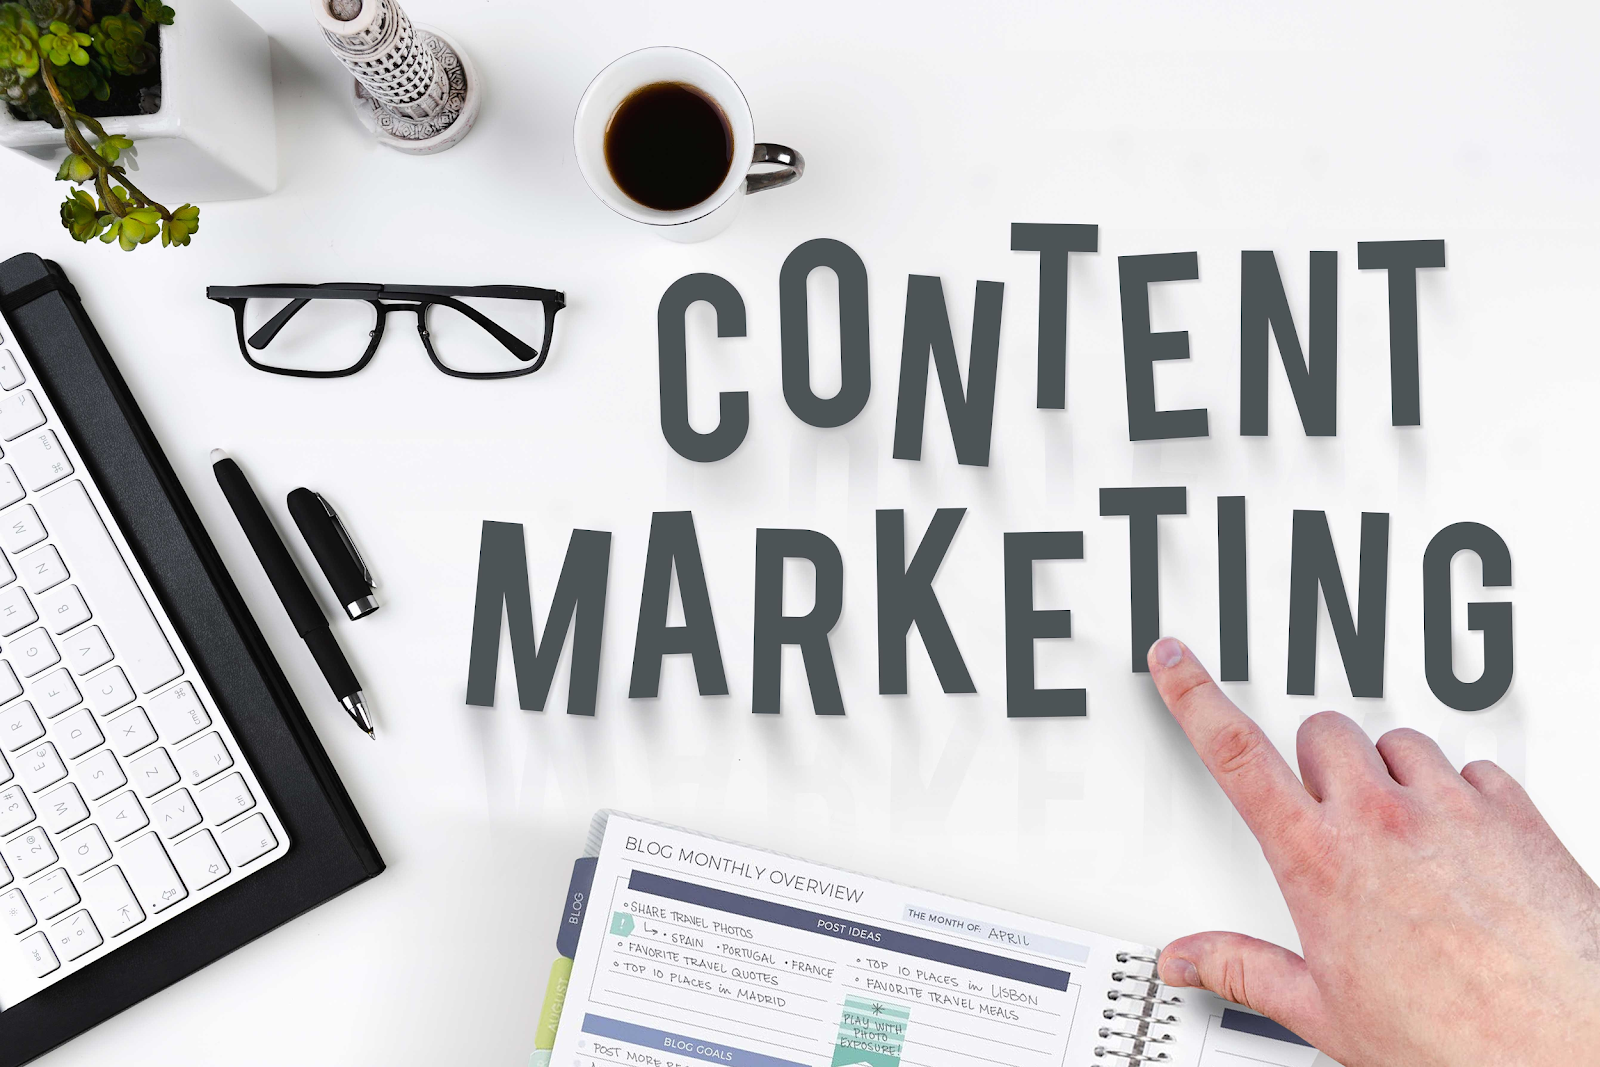 Create a strong content marketing strategy